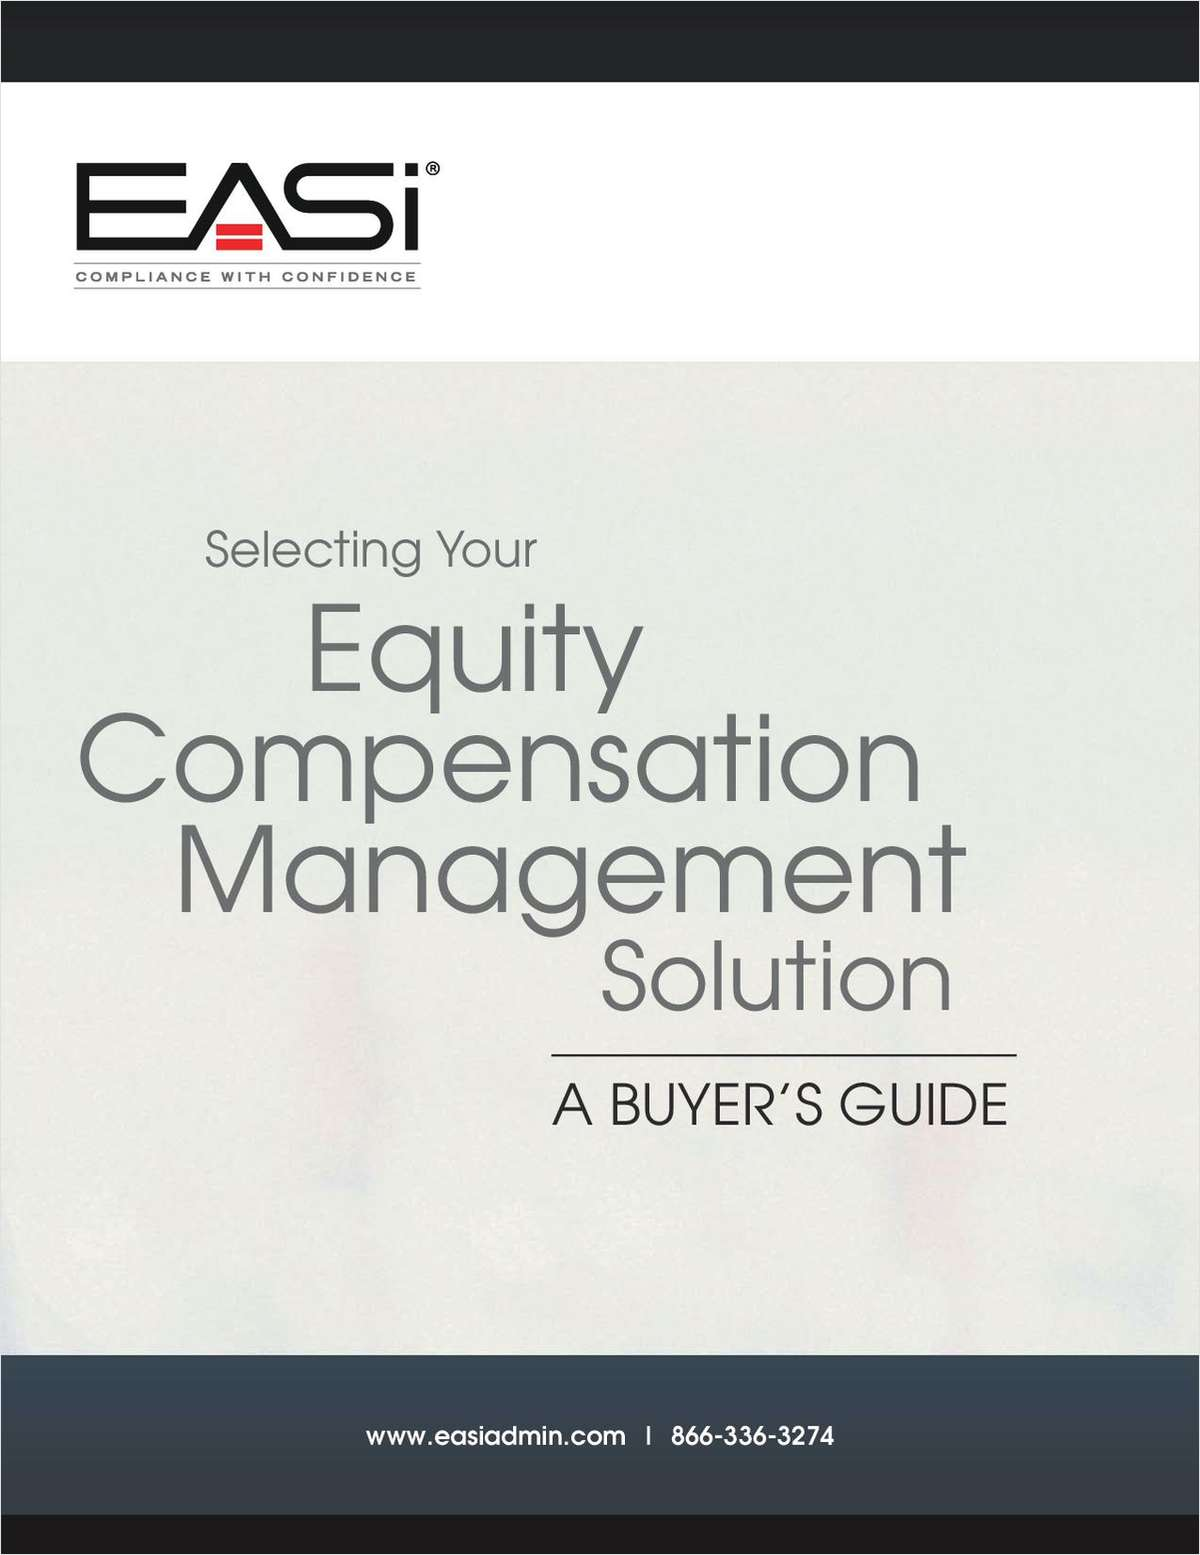 Selecting Your Equity Compensation Management Solution: A Buyer's Guide